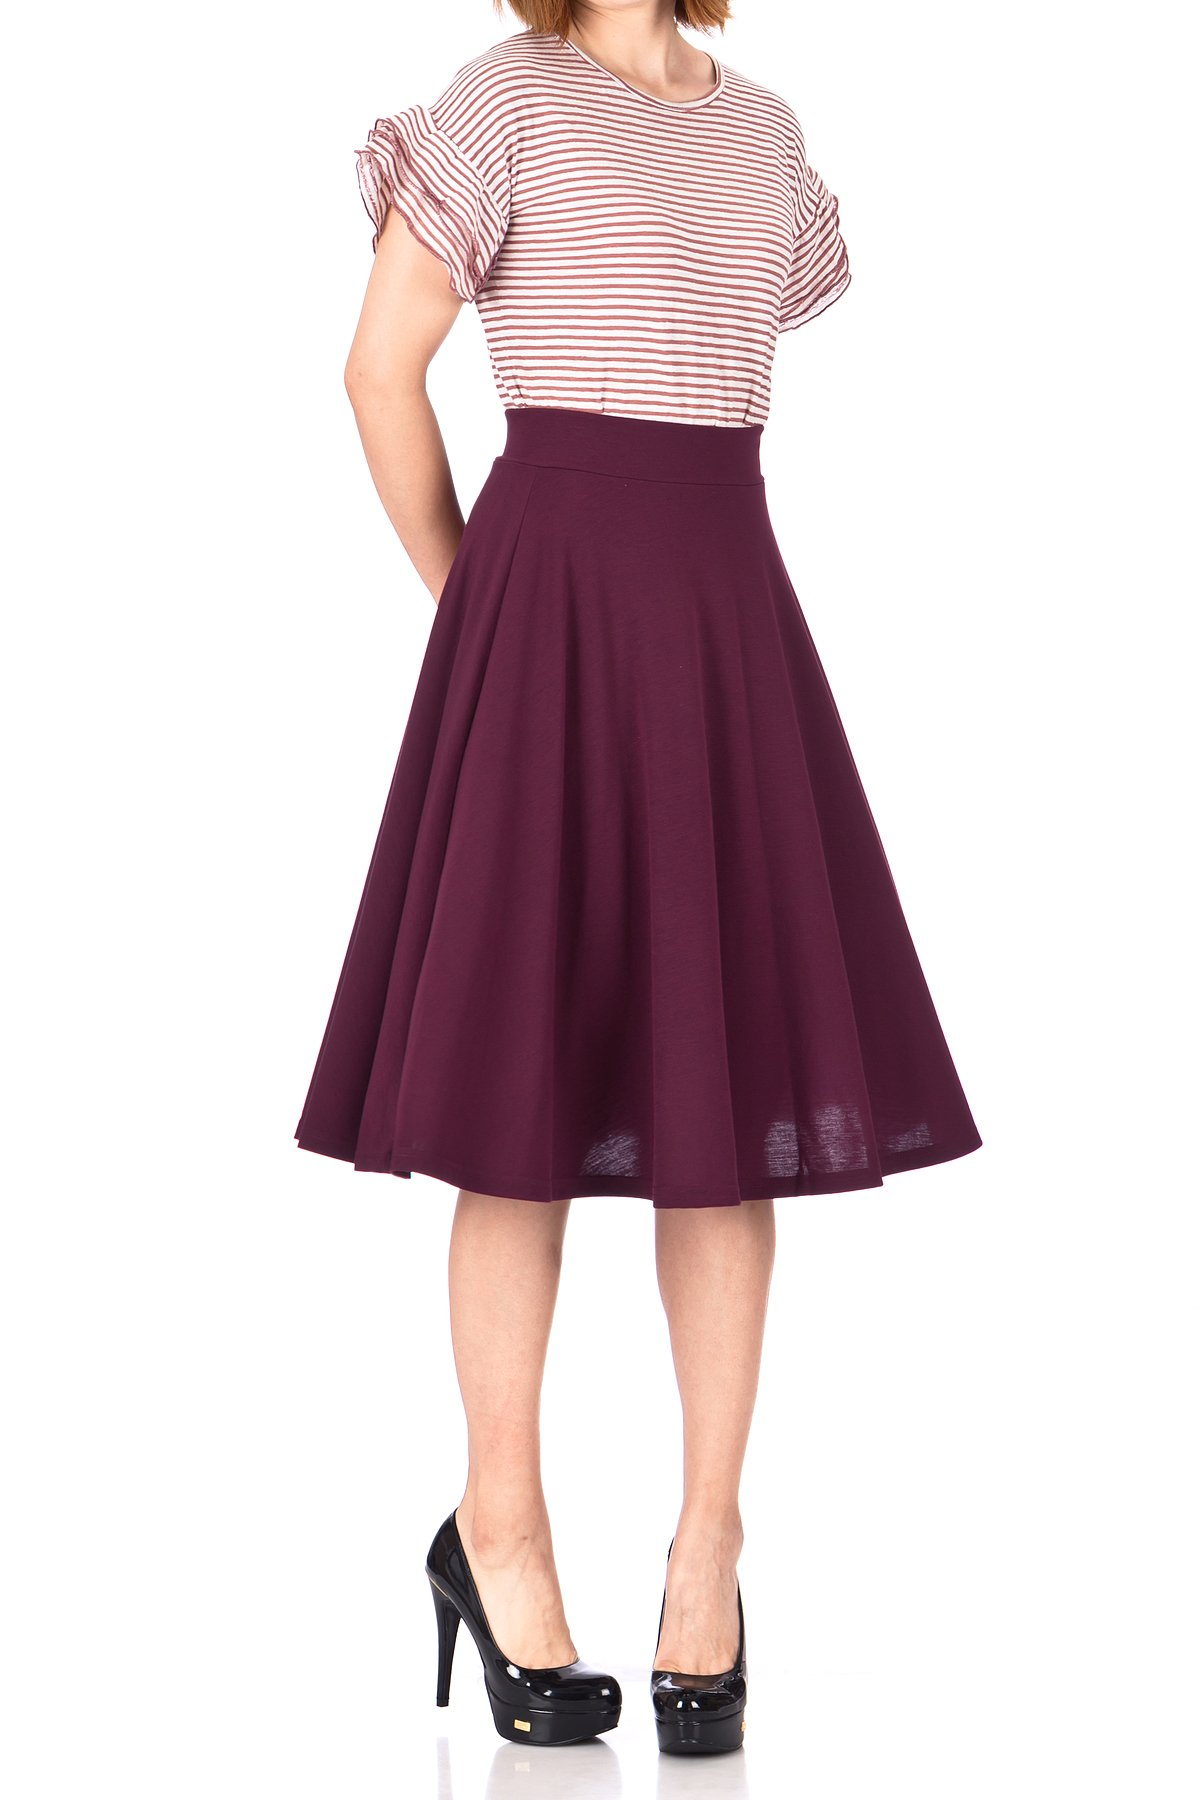 Beautiful Flowing A-line Flared Swing Midi Skirt (S, Bordeaux Wine)